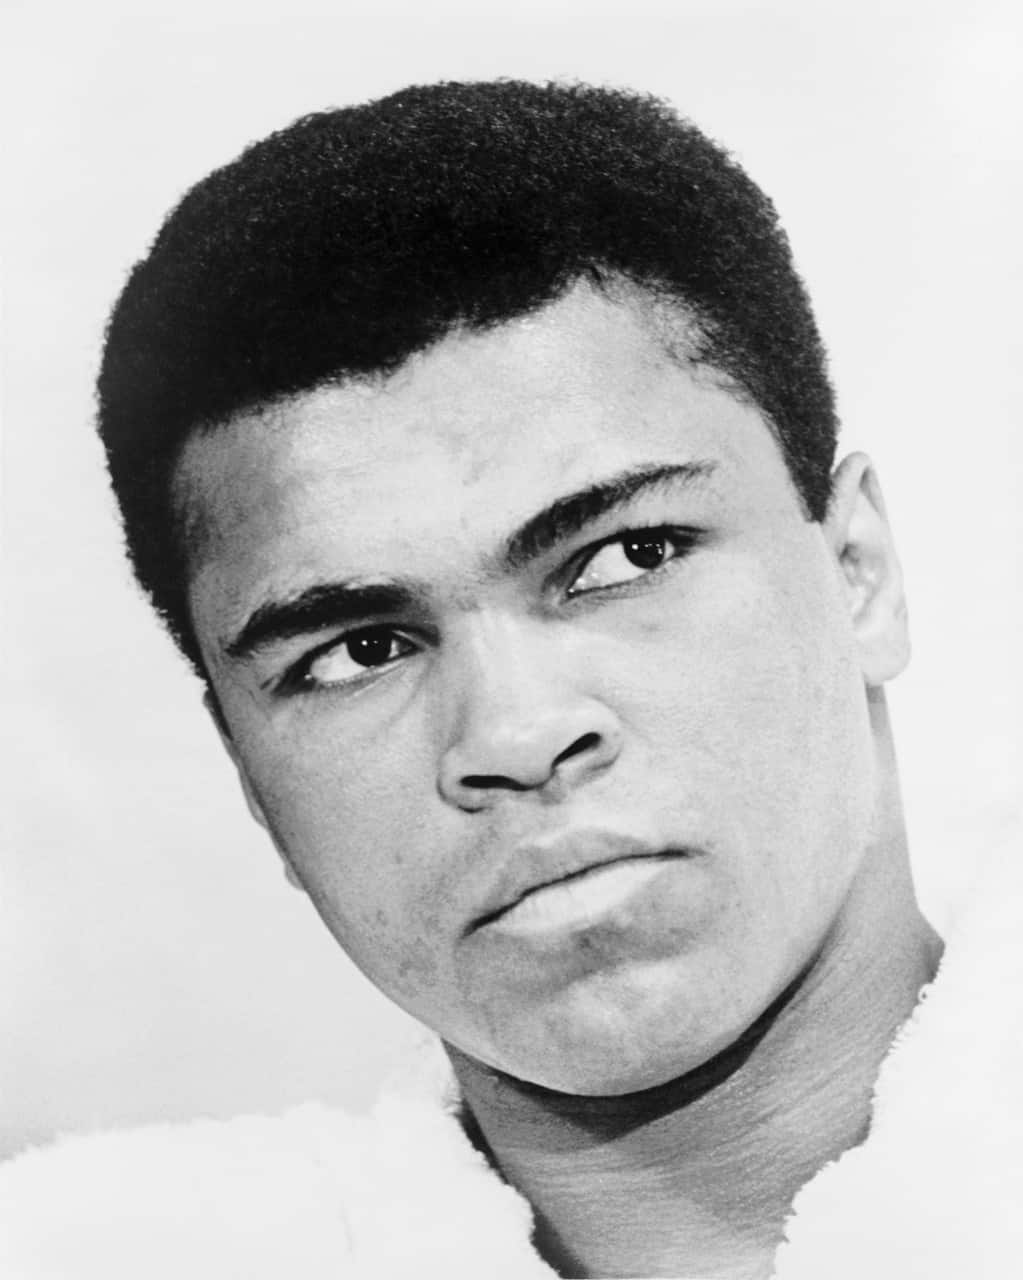 muhammad ali facts, people facts